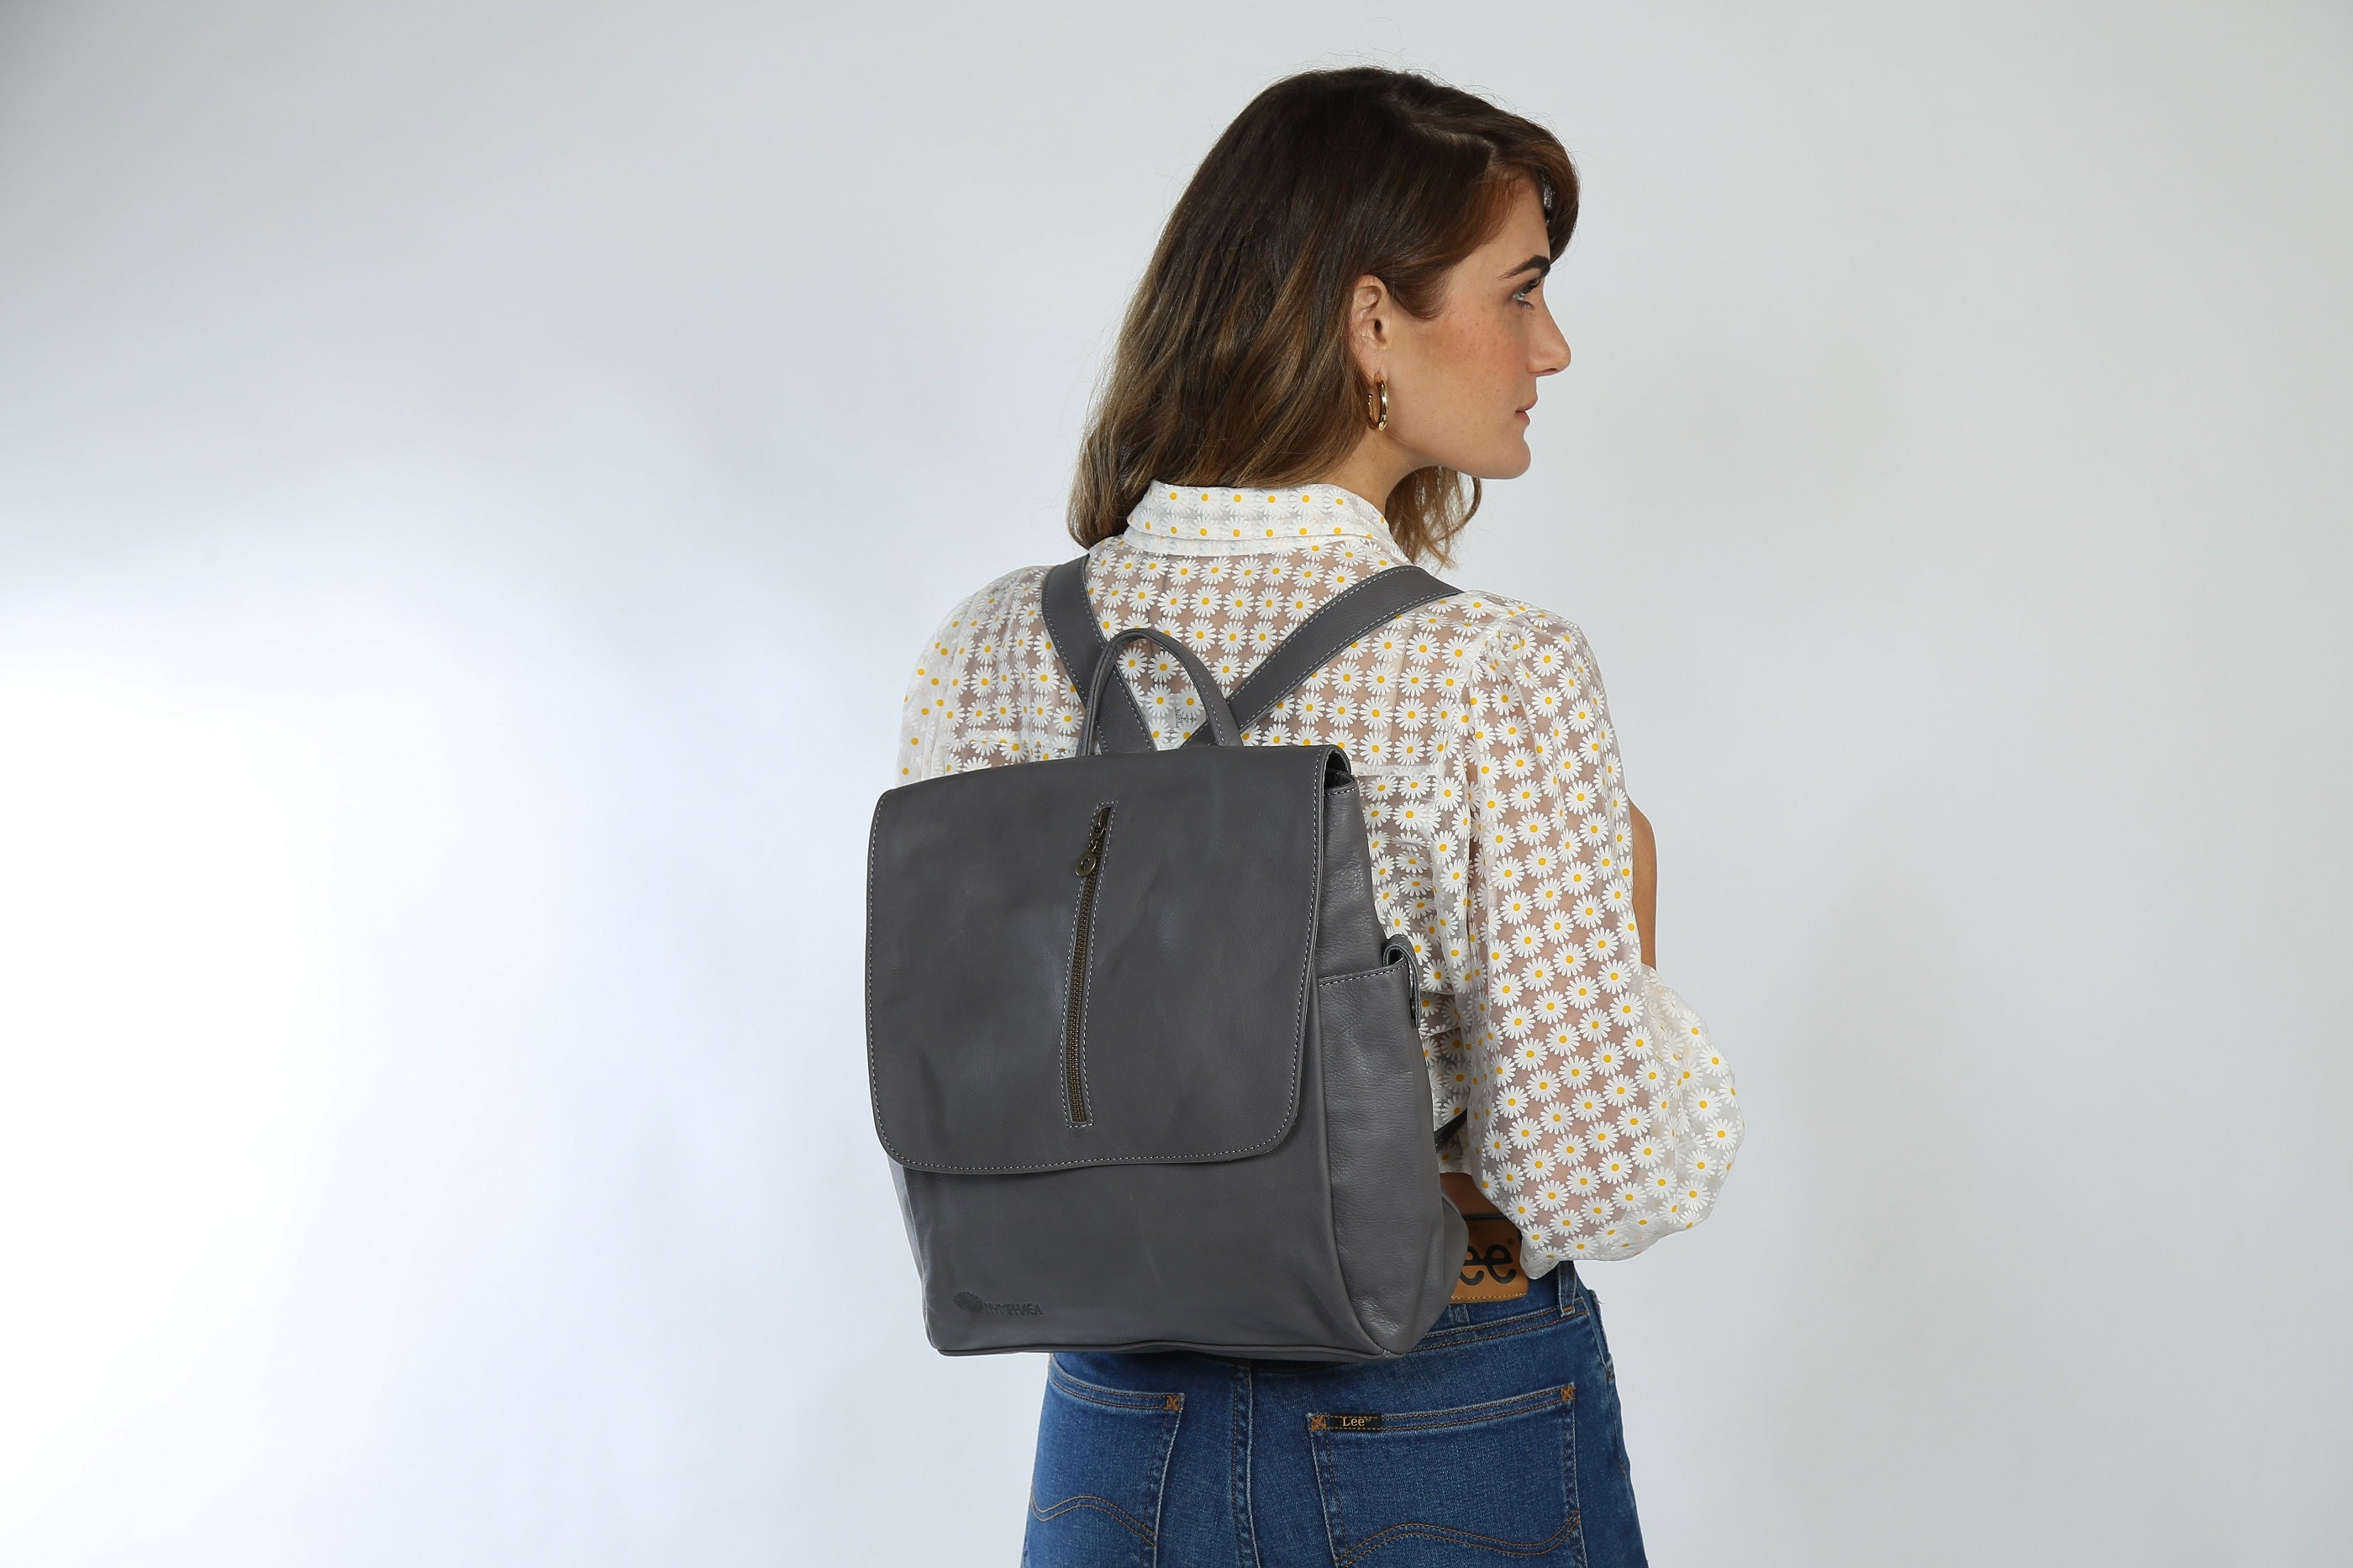 Adelle Gray Leather Backpack - Nymphaea design